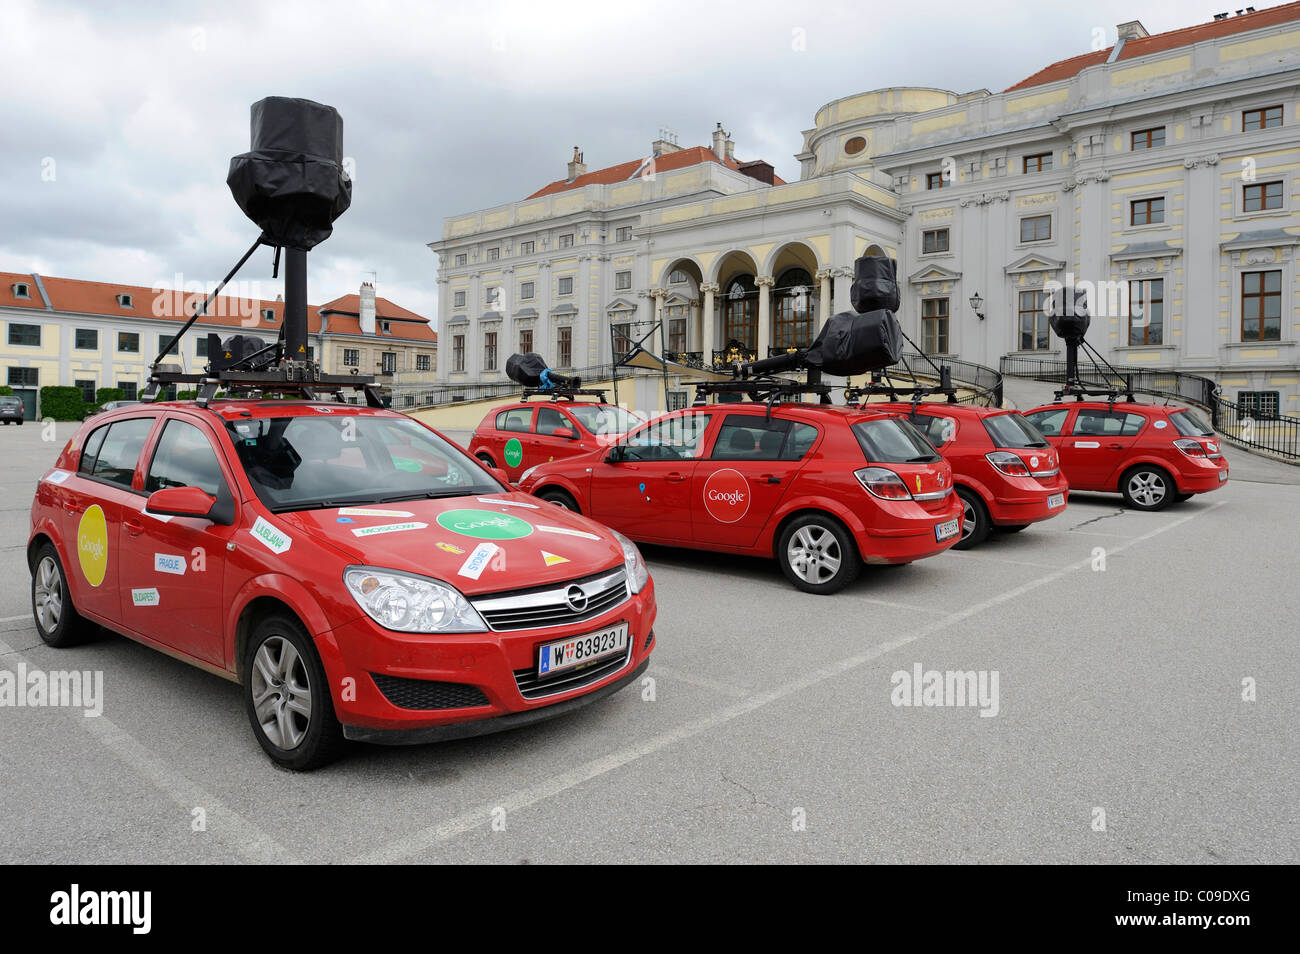 Google Street View vehicles with special cameras on standby at a parking site in Vienna, Austria, Europe - Stock Image